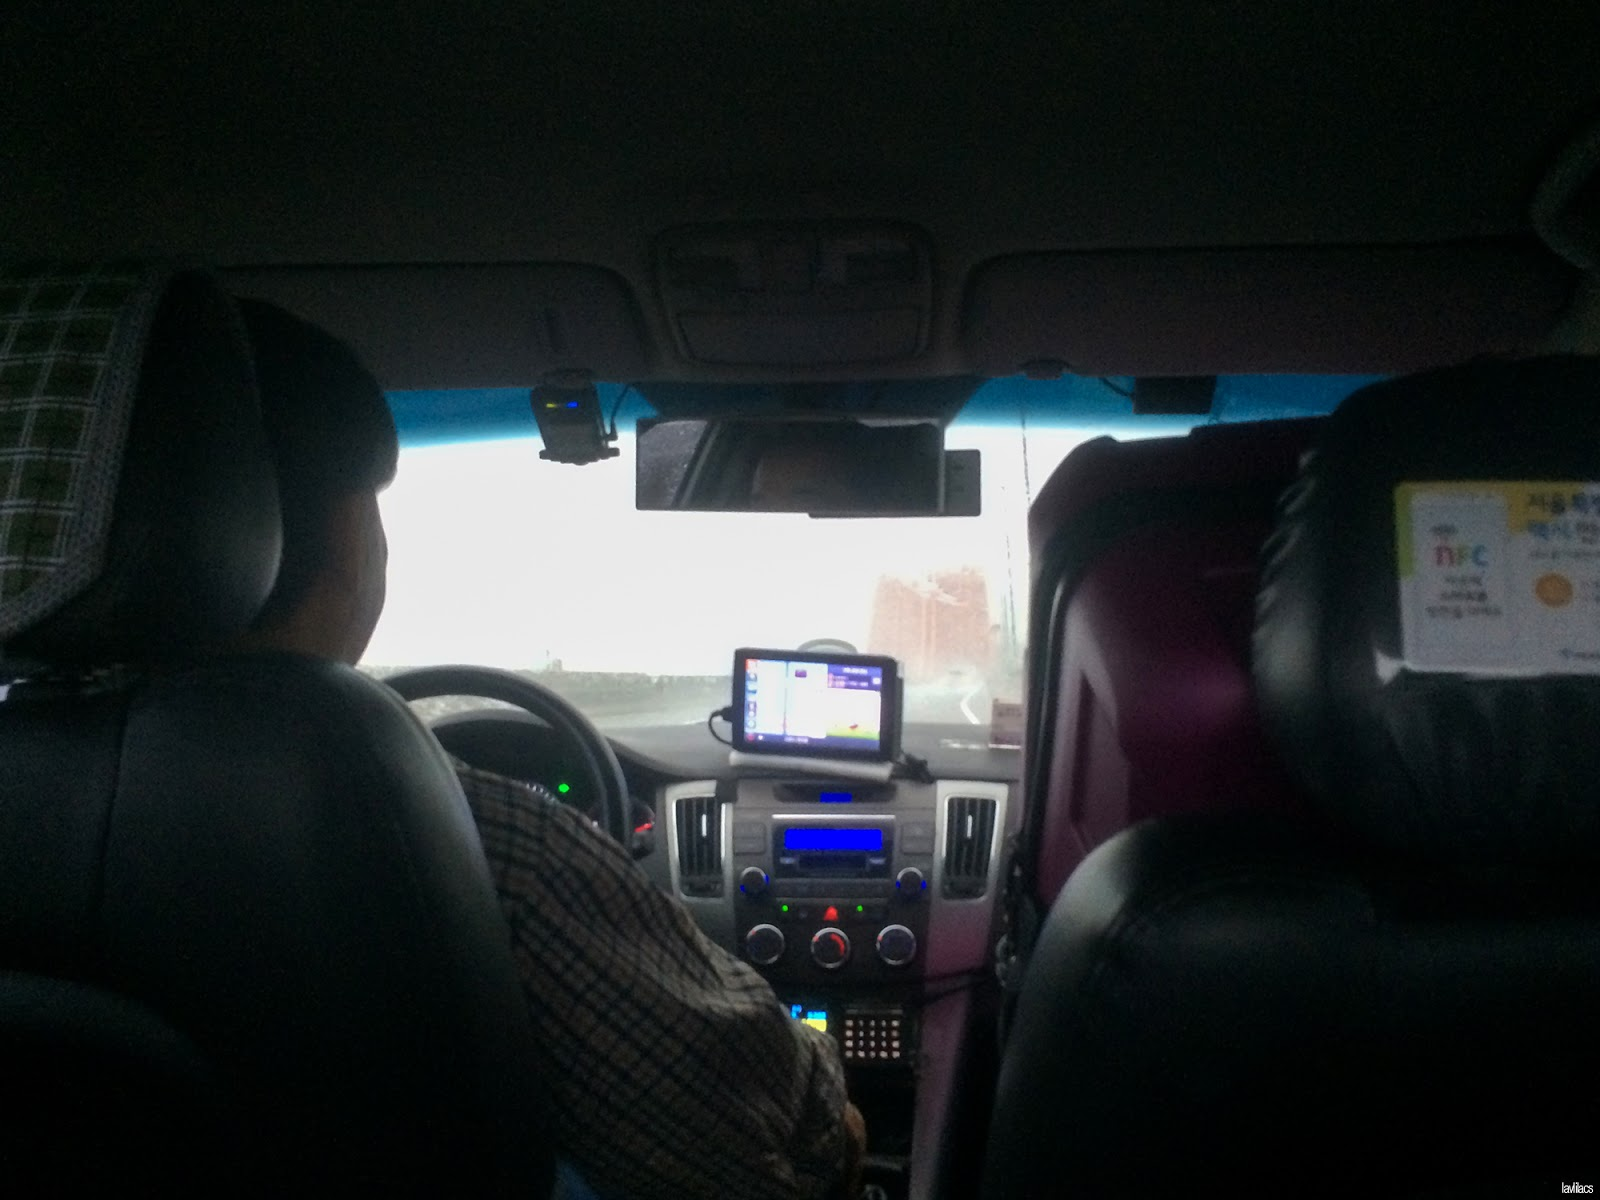 Seoul, Korea - Summer Study Abroad 2014 - Taxi ride to Incheon International Airport